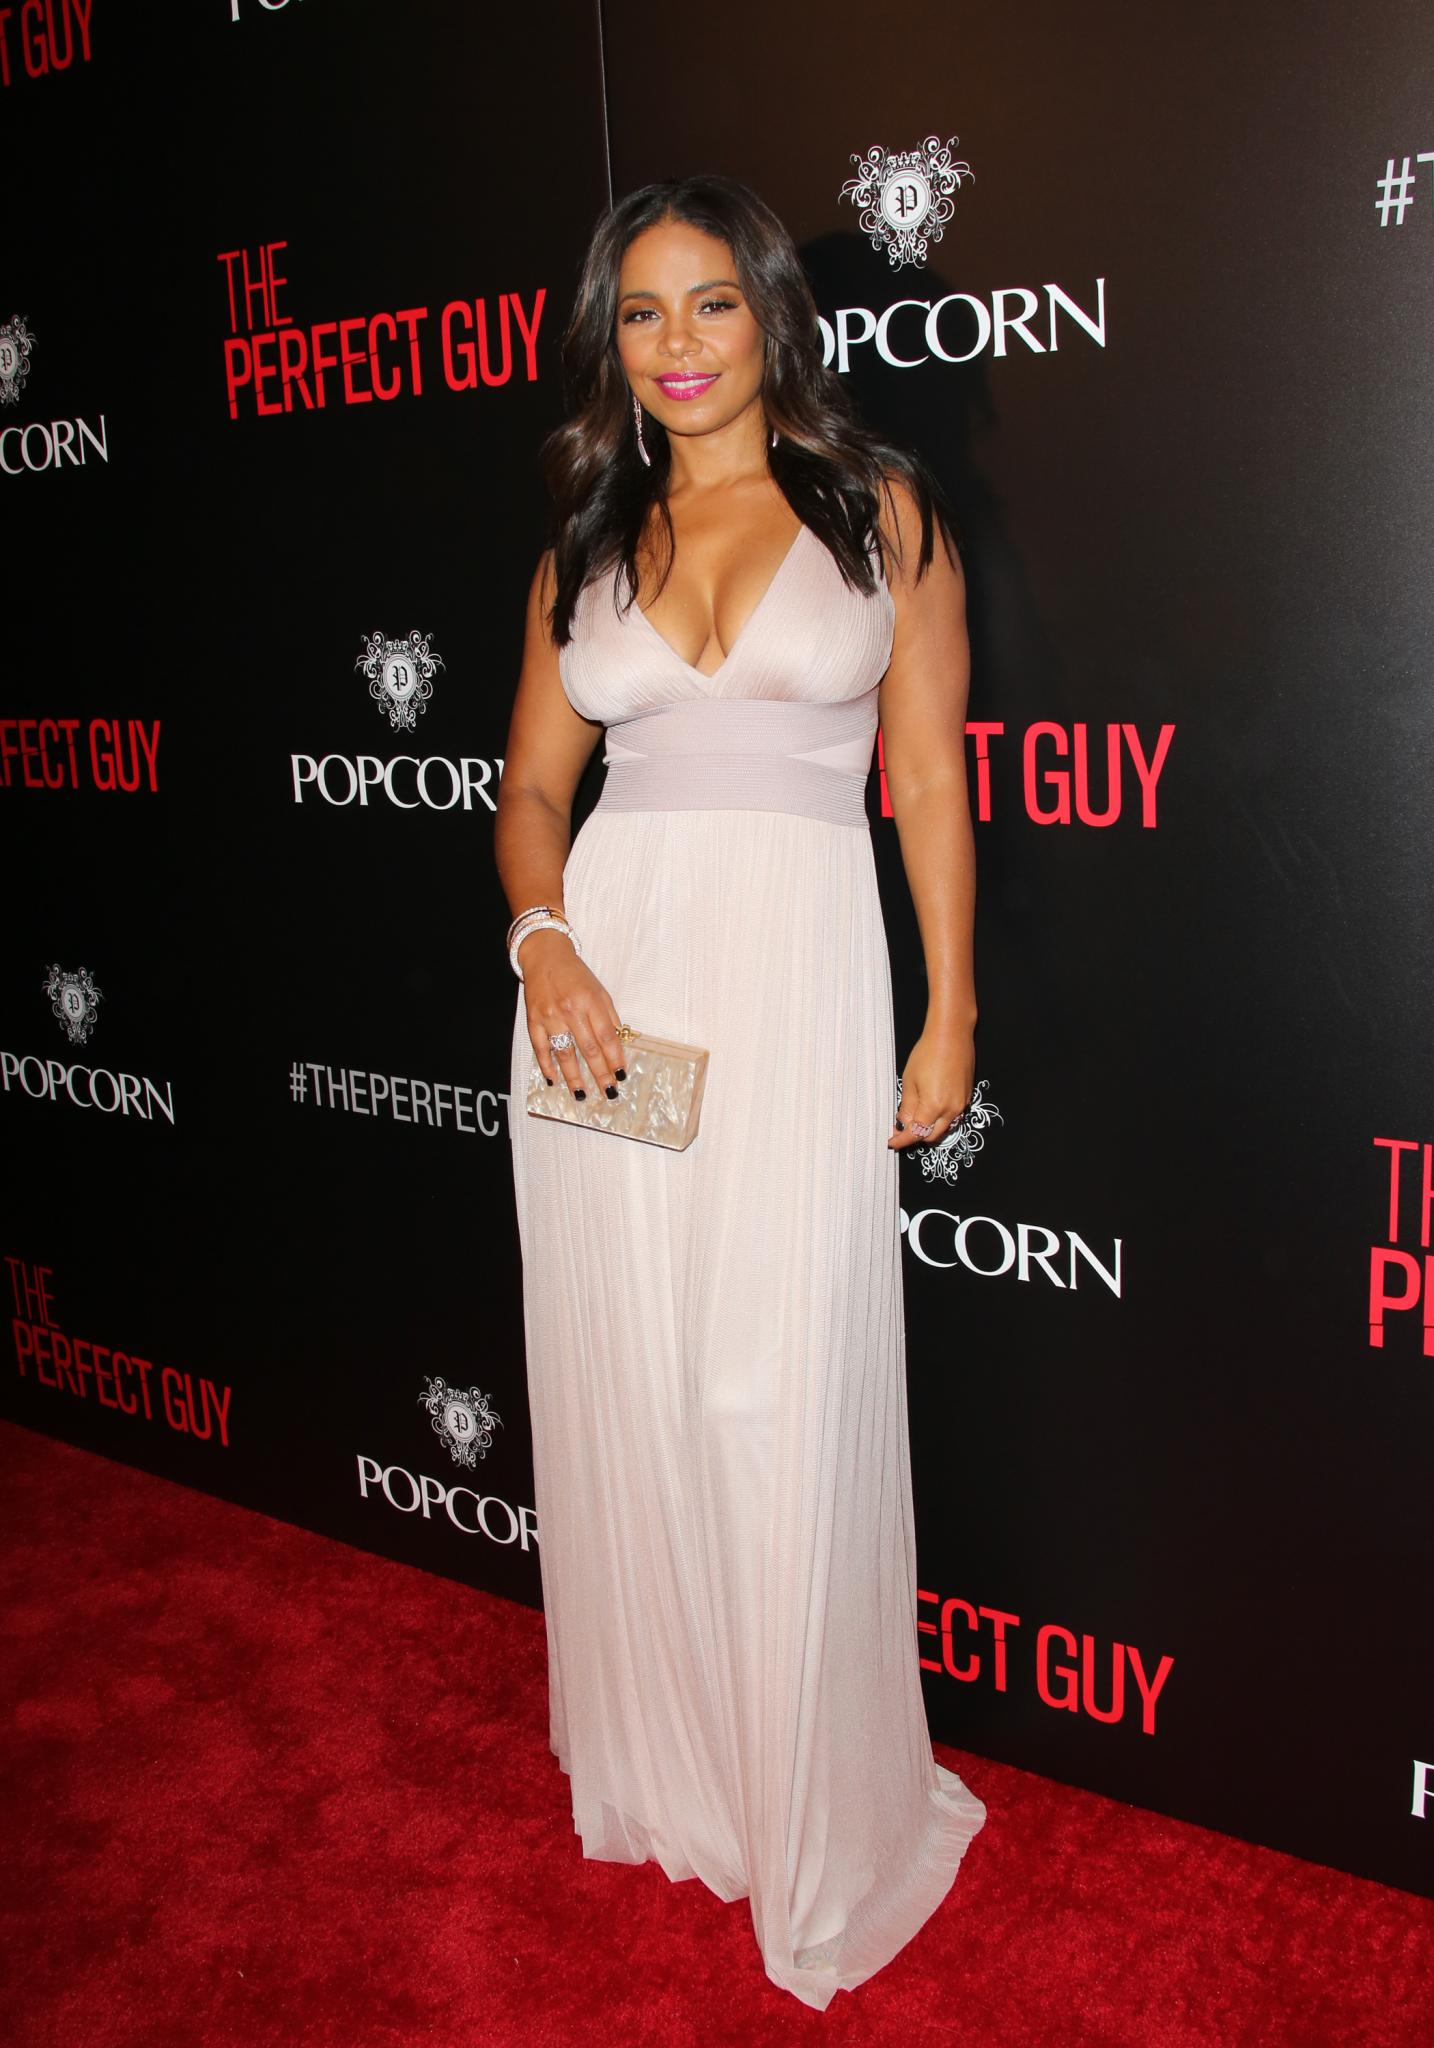 EXCLUSIVE: Sanaa Lathan Reveals How a Stalker Prepared Her for Her Role in 'The Perfect Guy'